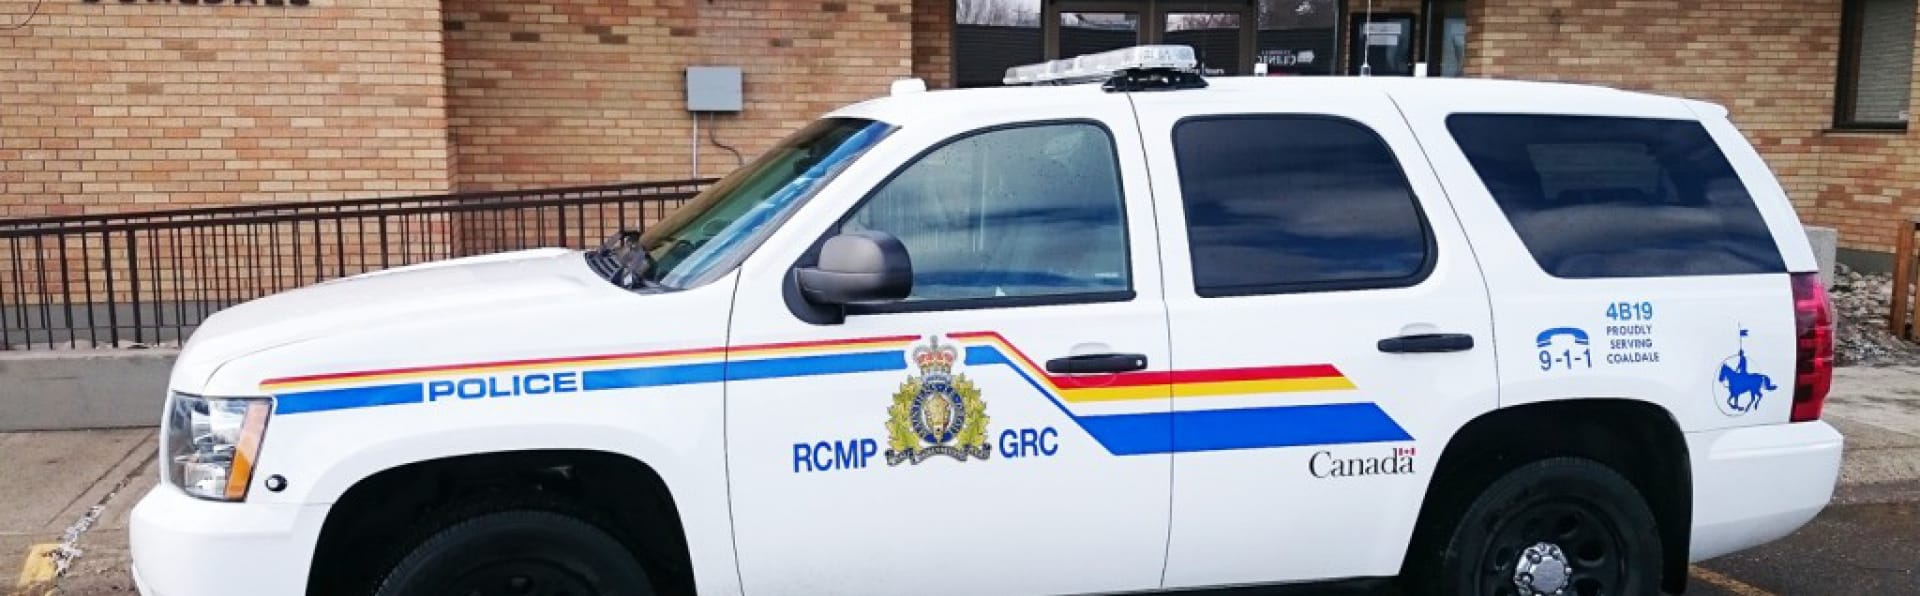 RCMP vehicle a Town Office